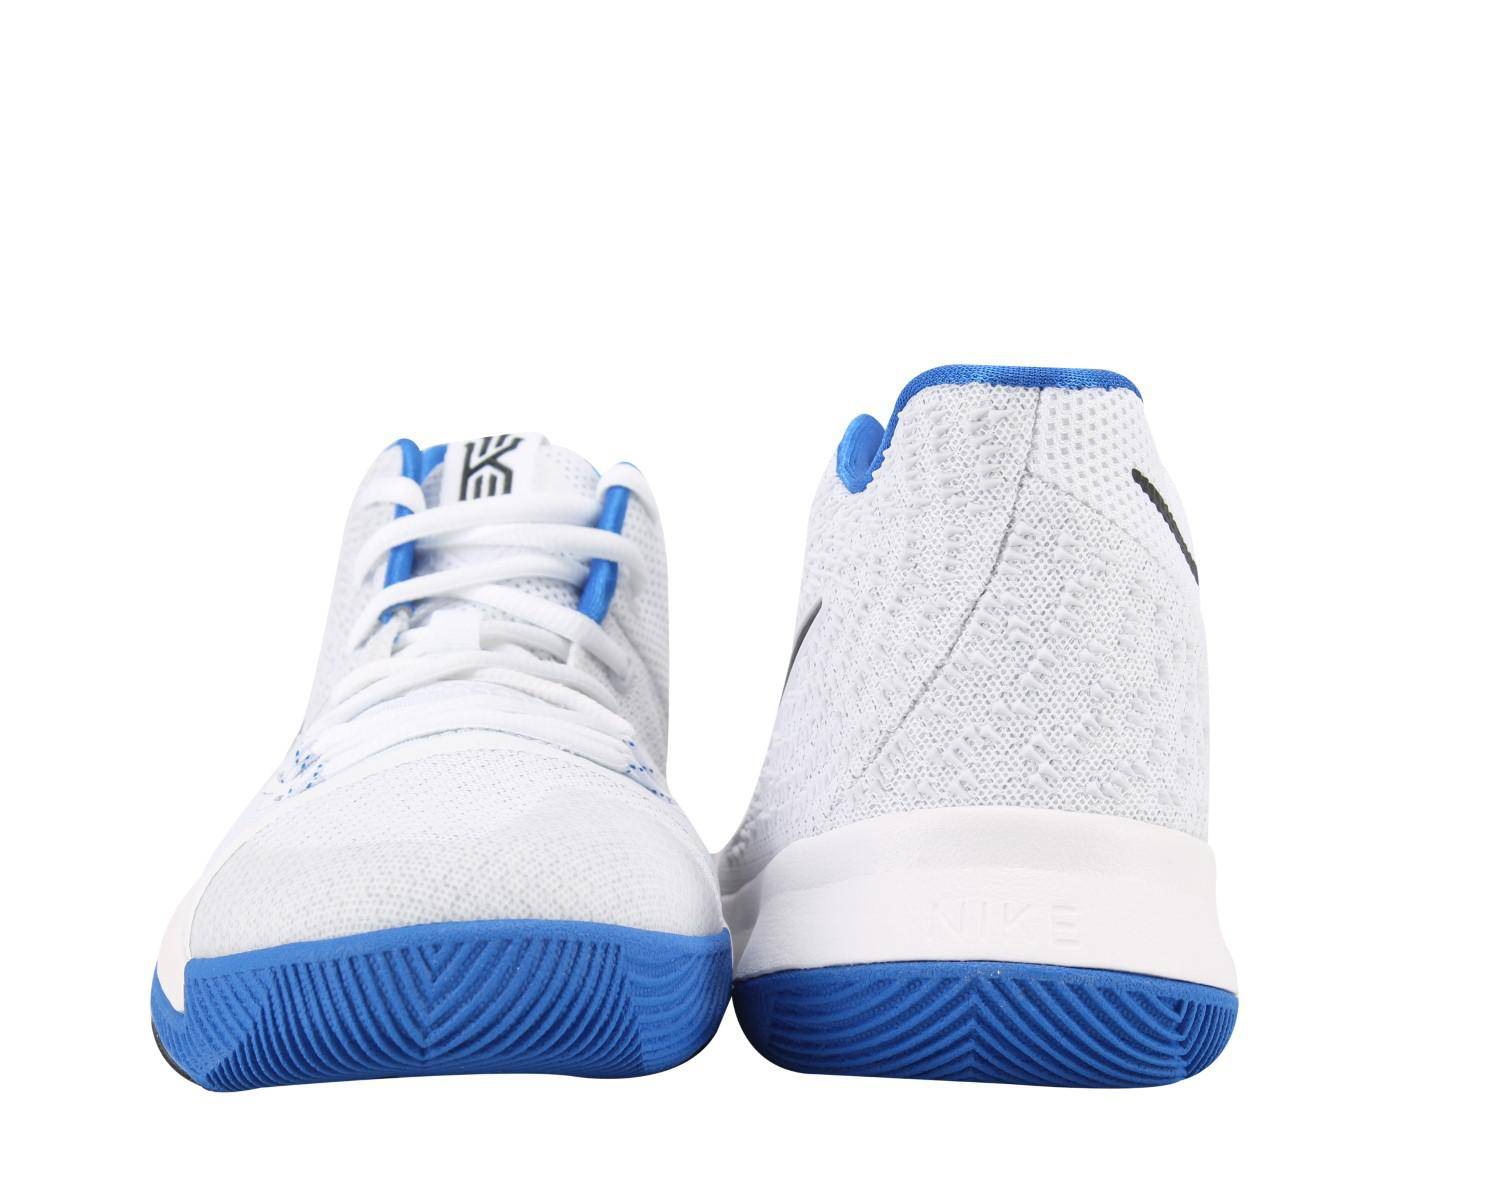 99d6c4a66aee Nike Kyrie 3 (gs) Big Kids Basketball Shoes Size 6.5 in Blue for Men ...